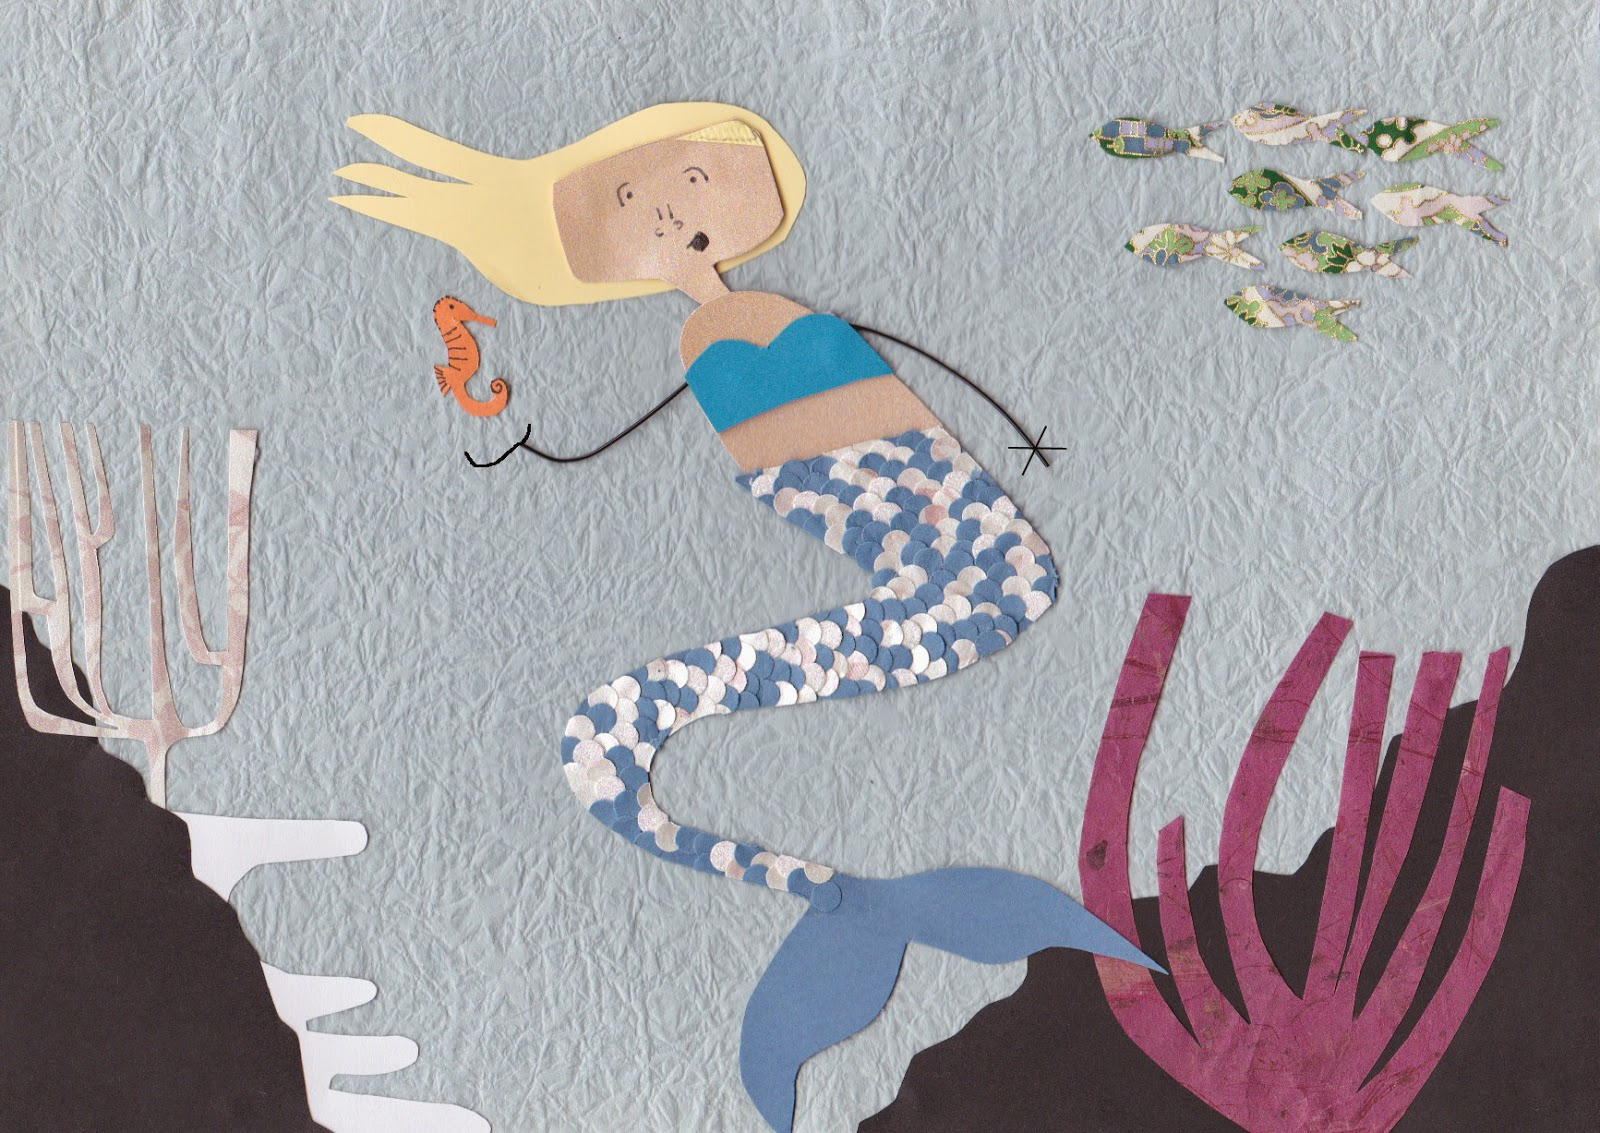 In her tail: how things would have gone down if I was the Little Mermaid